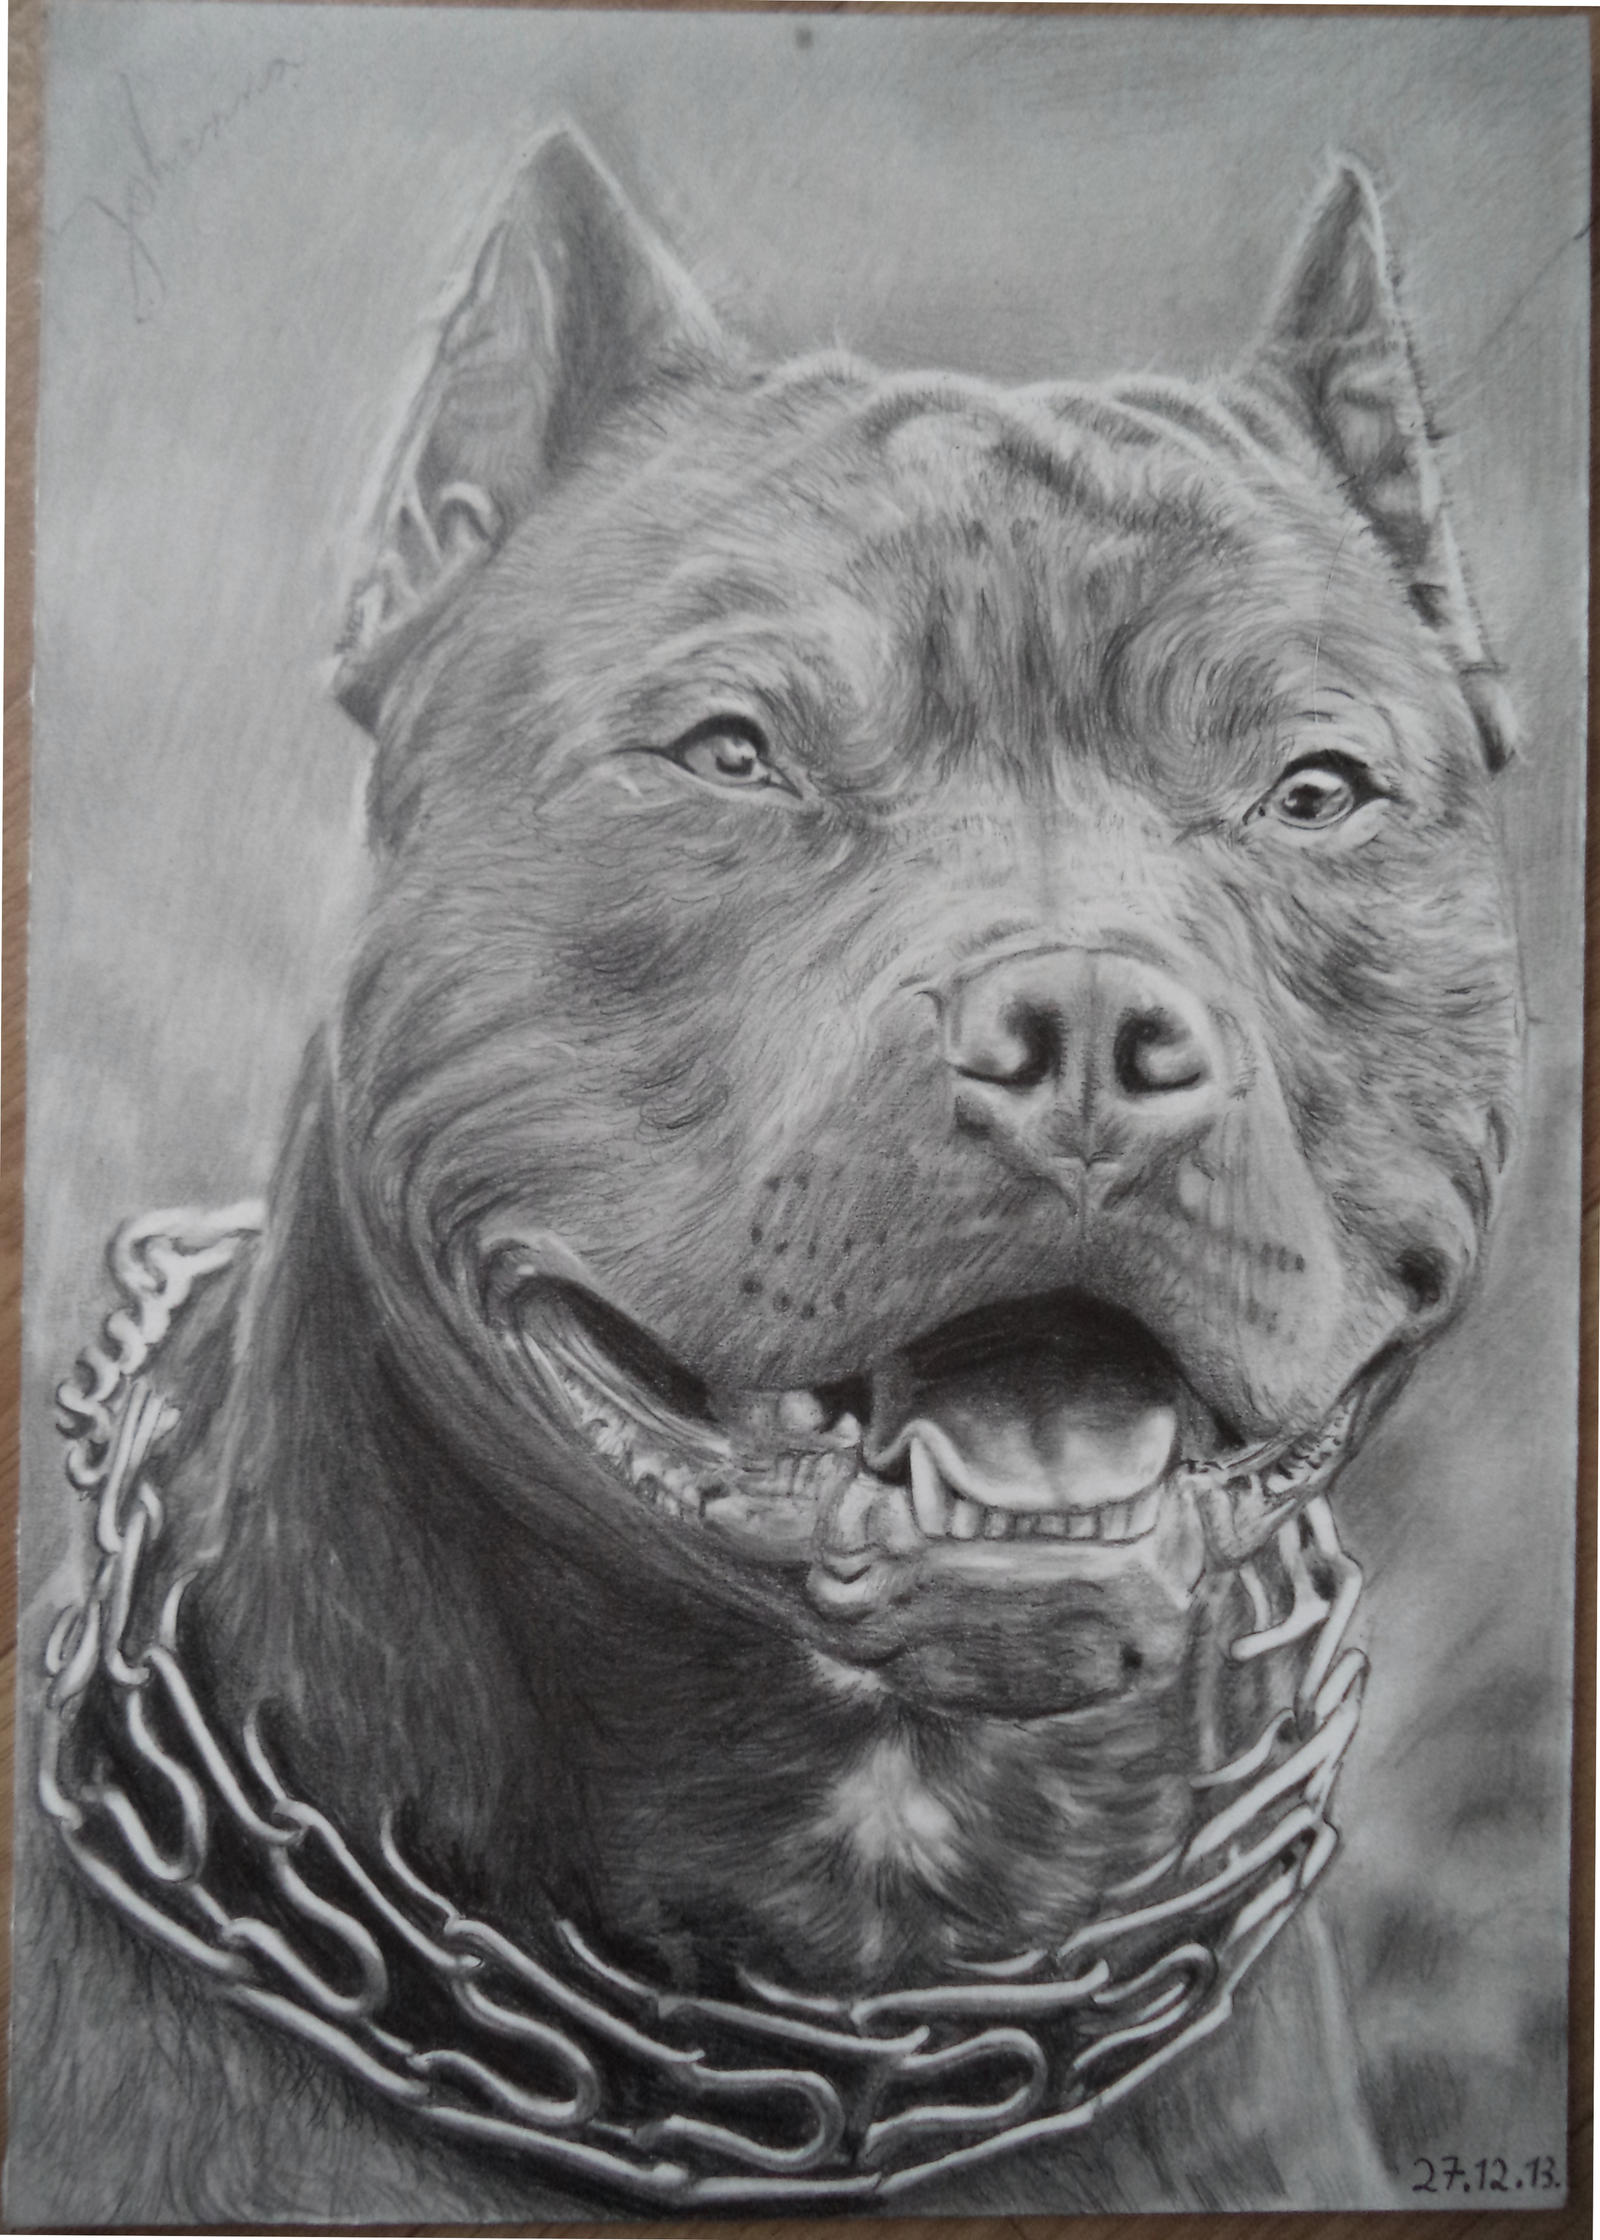 Pitbull dog drawings in pencil - photo#11